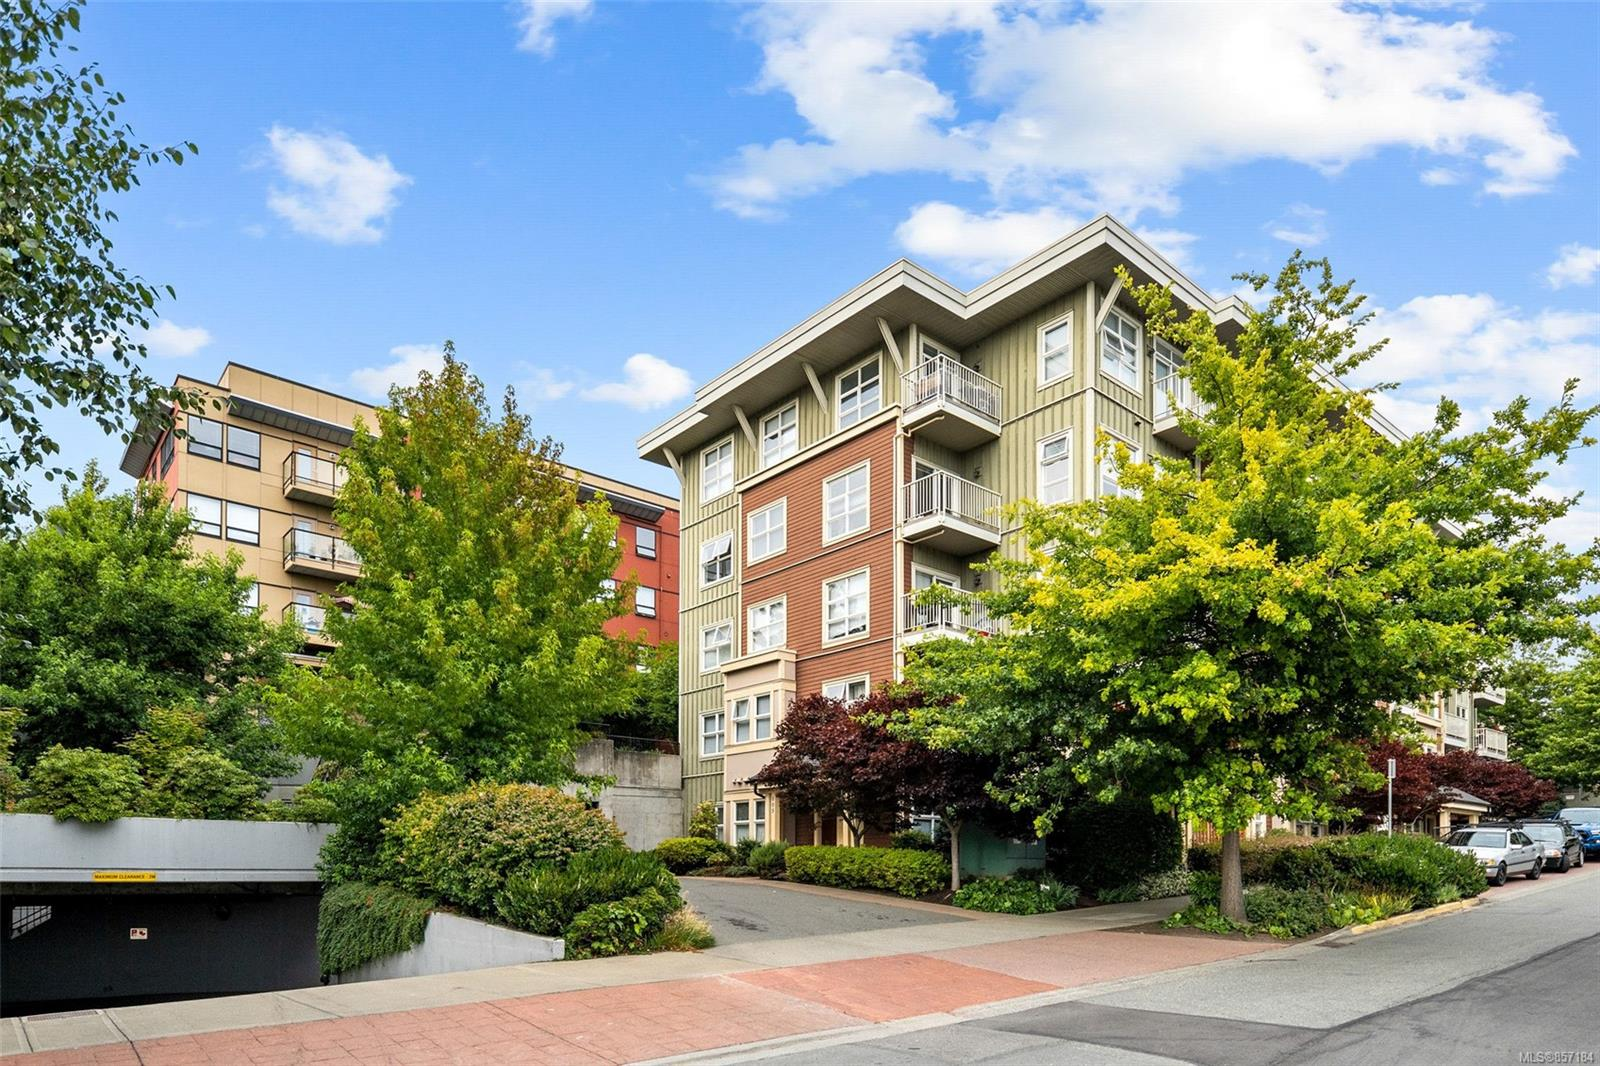 2 Bedroom, 2 Bathroom, Condo/Townhouse in Saanich East